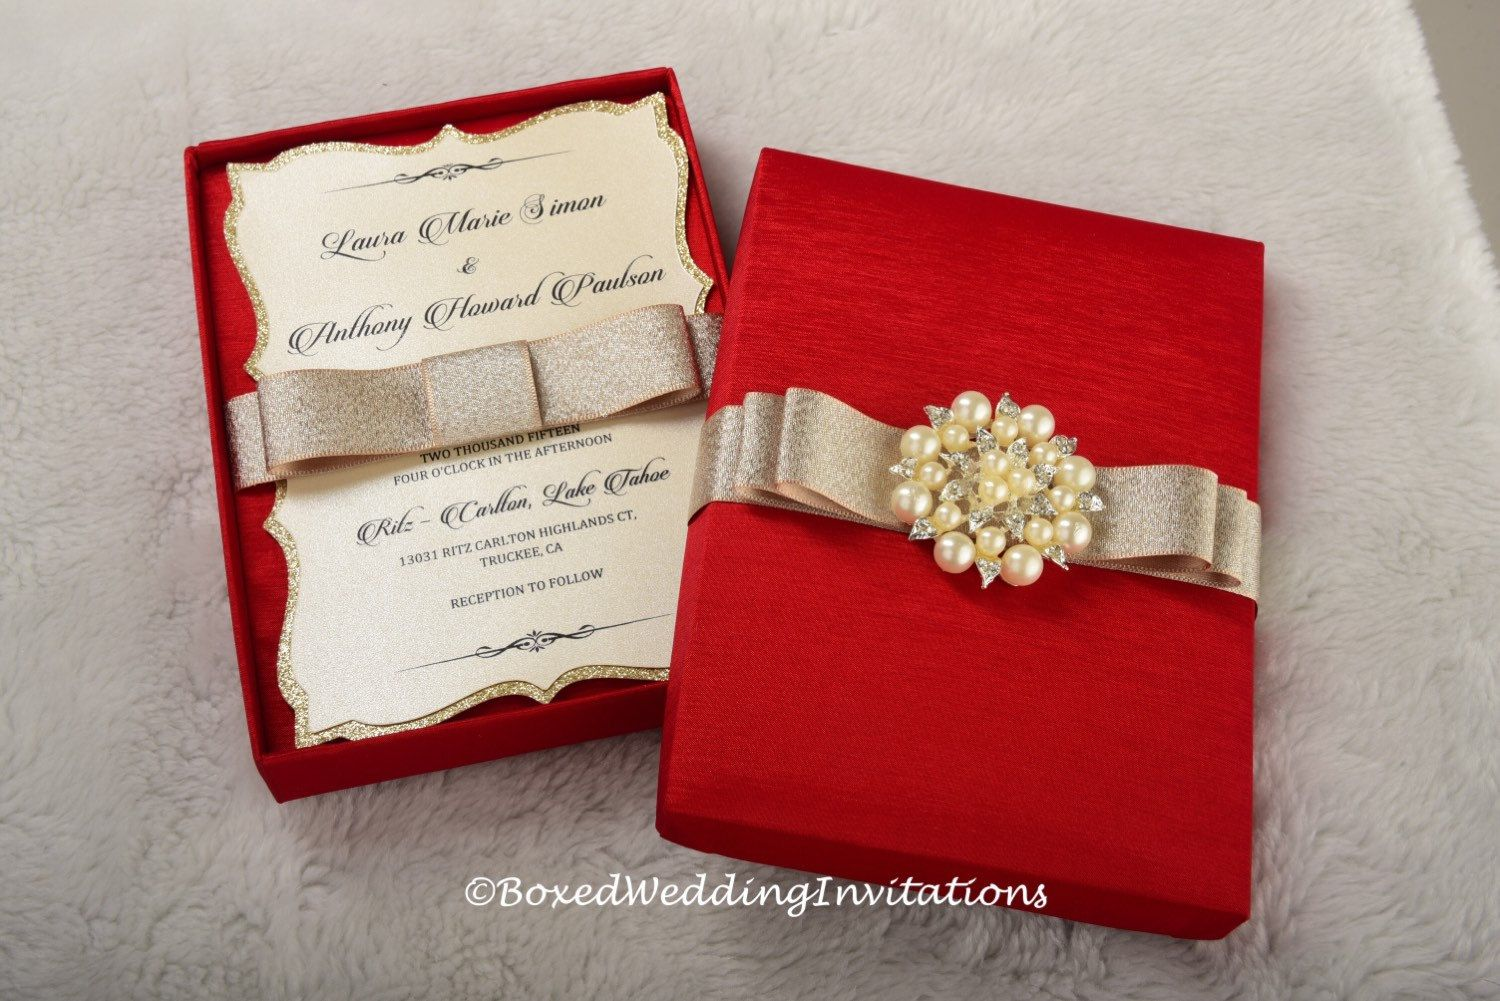 Red Invitation Box & Invitation Card | Invites | Pinterest | Box ...